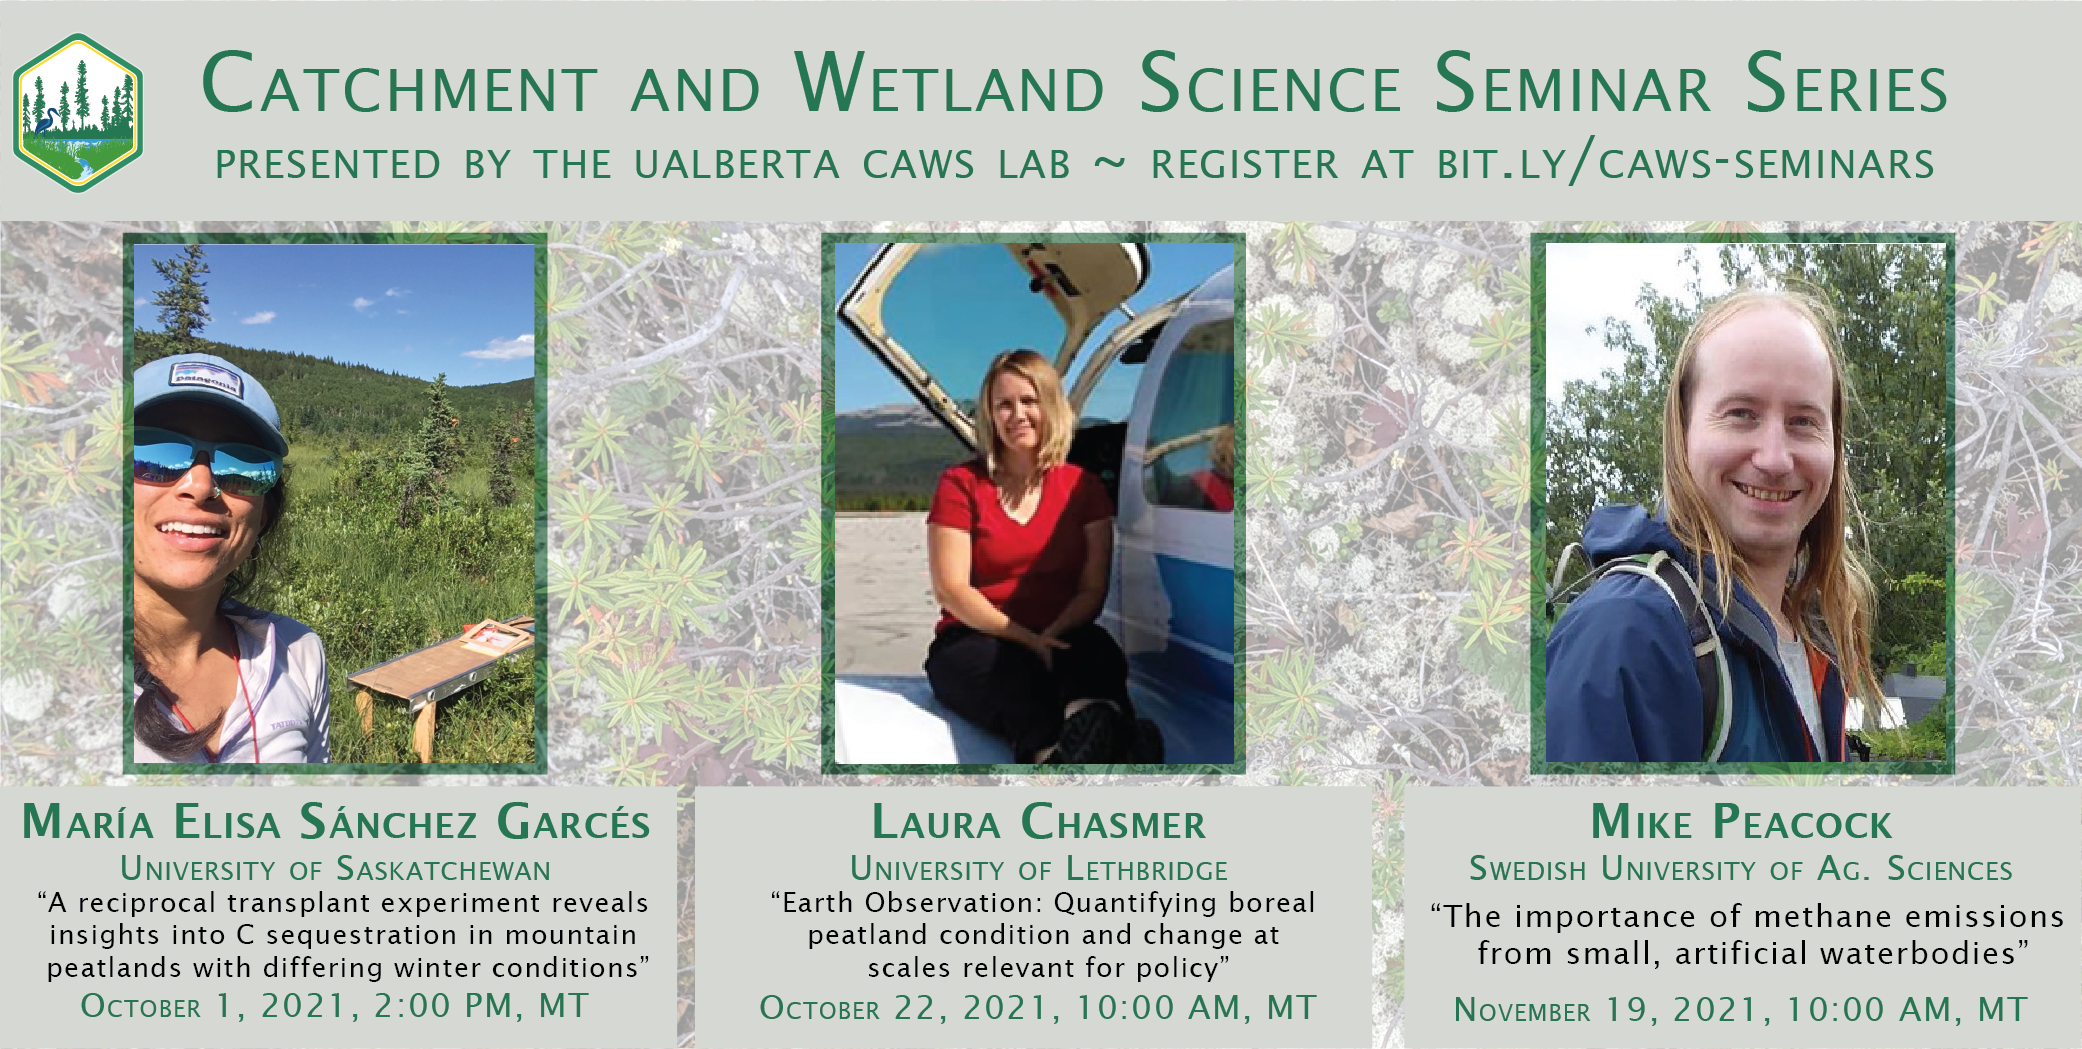 """Poster with dark green text with a background photo of sub-arctic peat plateau vegetation advertising """"Catchment and Wetland  Science Seminar Series, presented by the UAlberta CAWS Lab.""""  Maria Elisa Sanchez Garces, University of Saskatchewan, speaking October 1, 2:00 PM MT: """"A reciprocal transplant experiment reveals insights into C sequestration in mountain peatlands with differing winter conditions""""  Laura Chasmer, University of Lethbridge, speaking October 22, 10:00 AM MT: """"Earth Observations: Quantifying boreal peatland conditions and change at scales relevant for policy""""  Mike Peacock, Swedish University of Agricultural Sciences, speaking November 19, 2021, 10:00 AM MT: """"The importance of methane emissions from small artificial waterbodies""""  http://bit.ly/caws-seminars"""